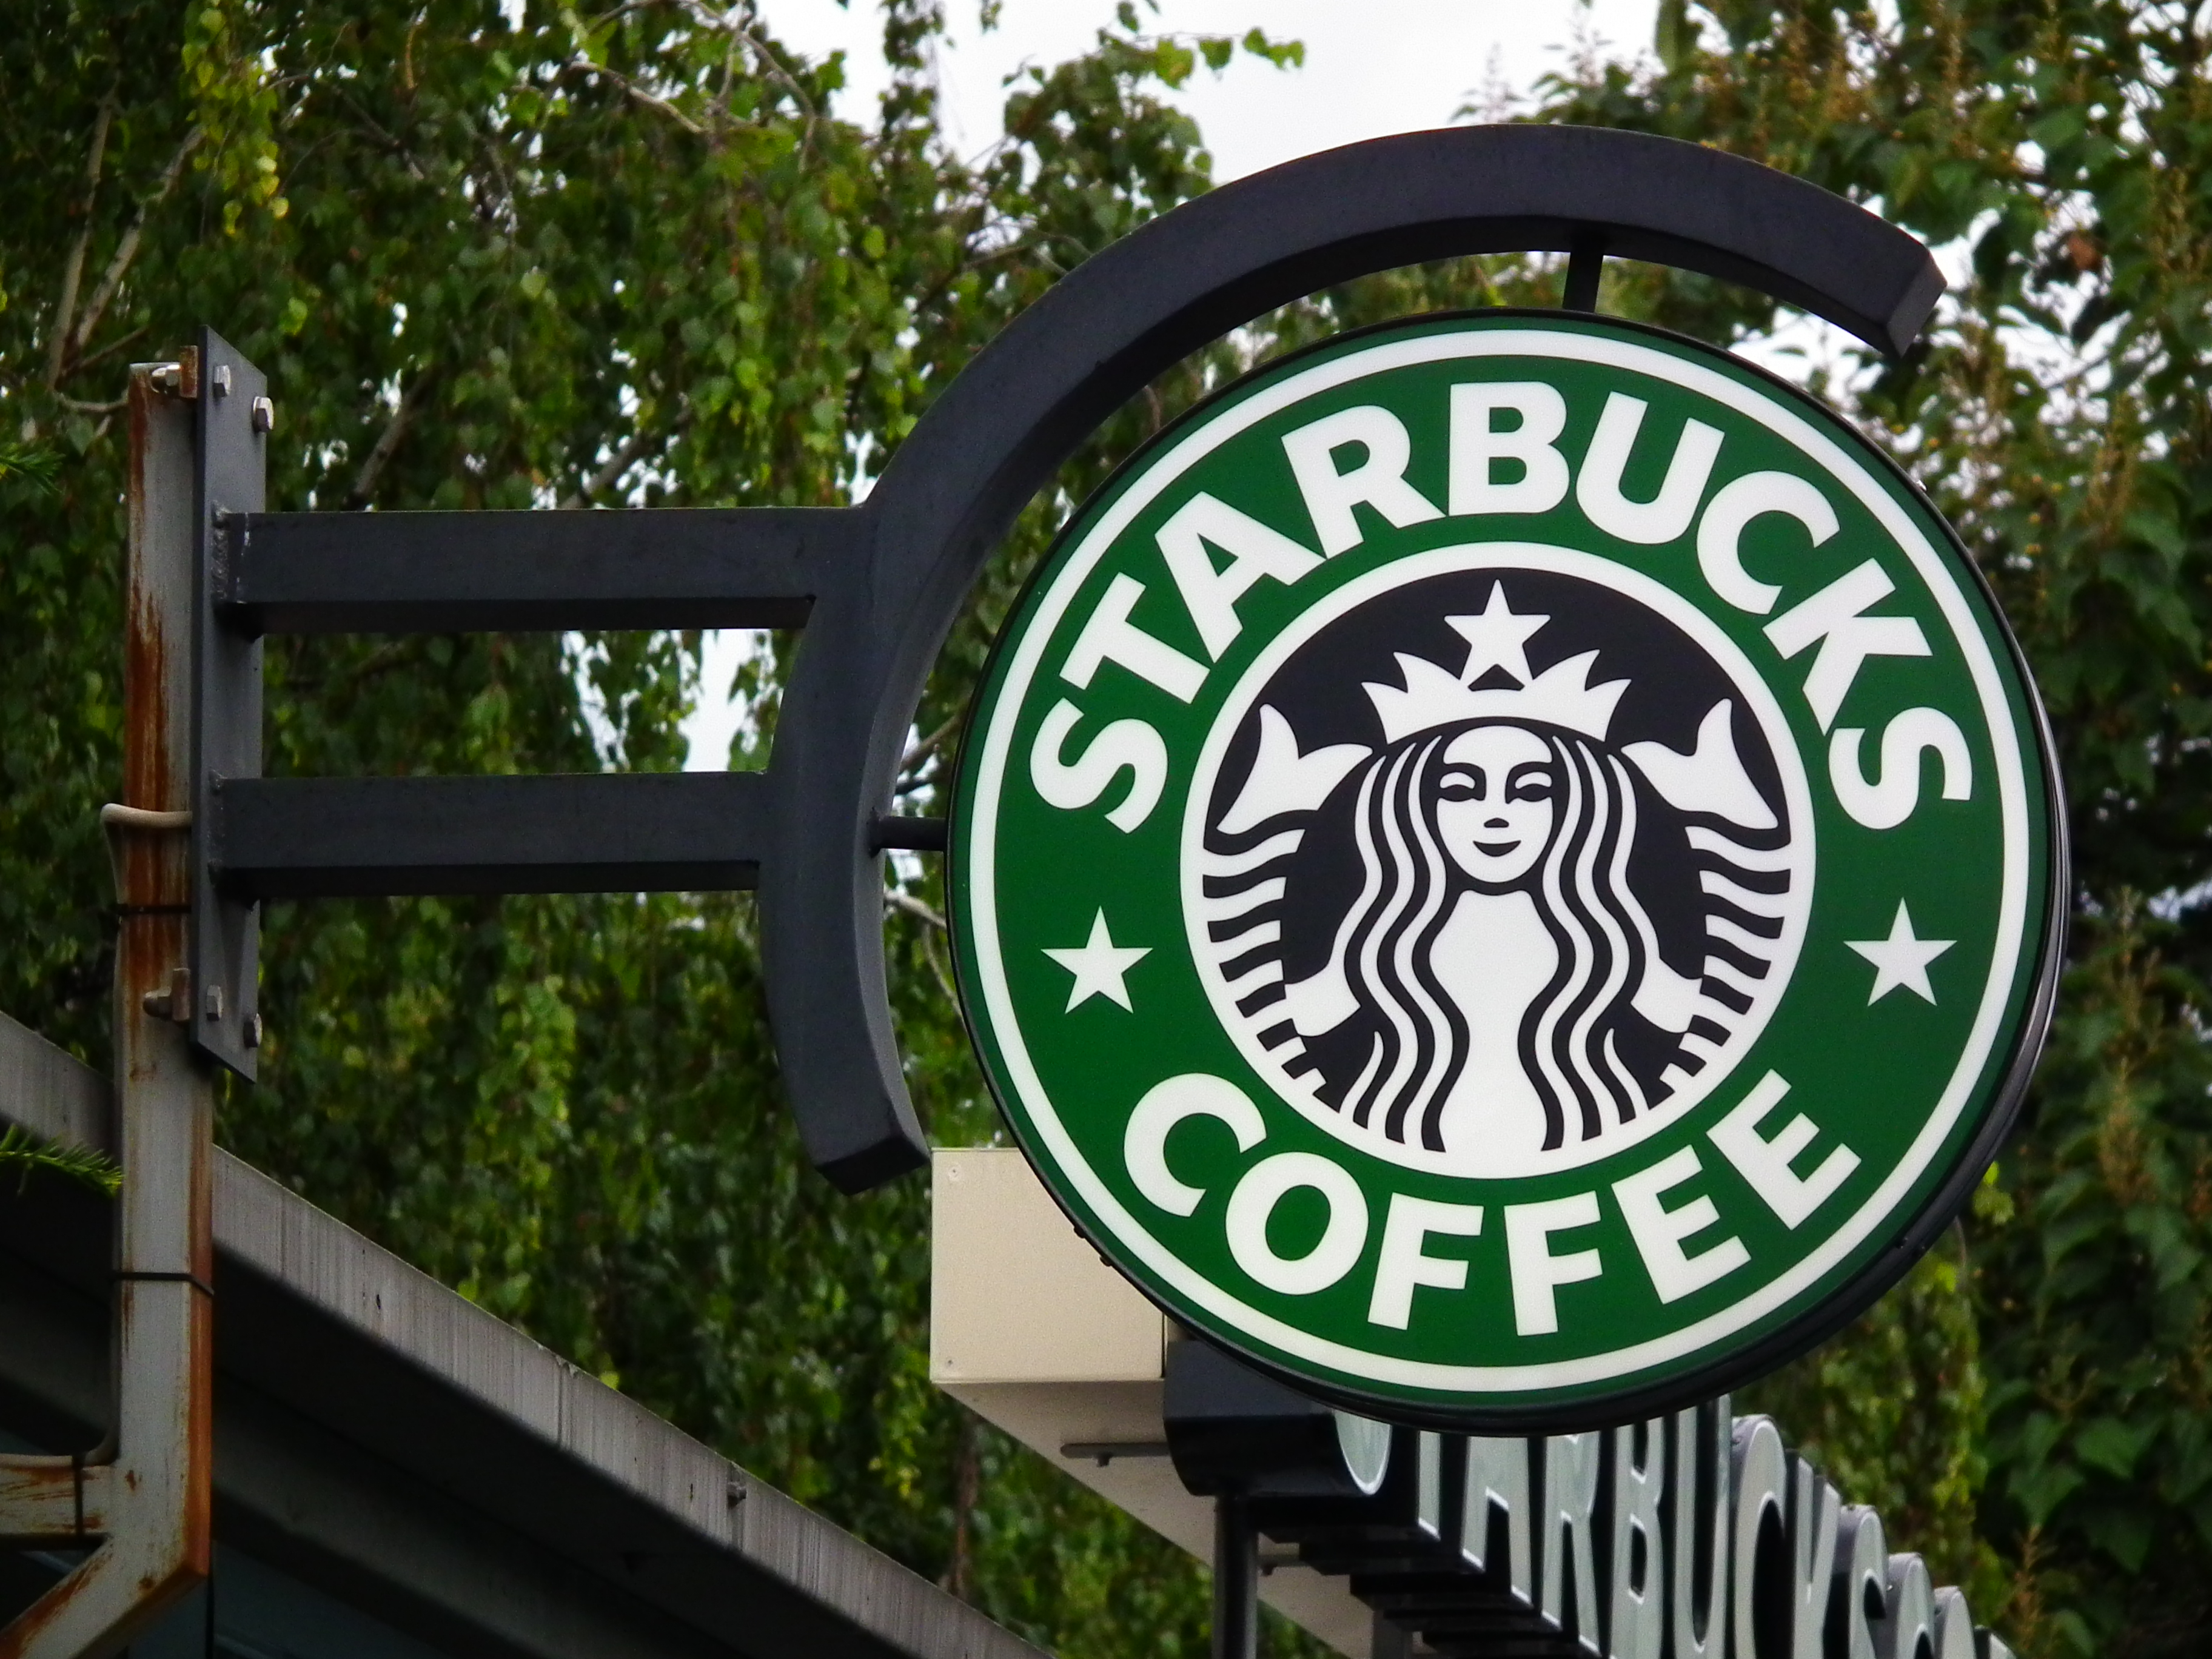 Image of a rustic Starbucks exterior sign